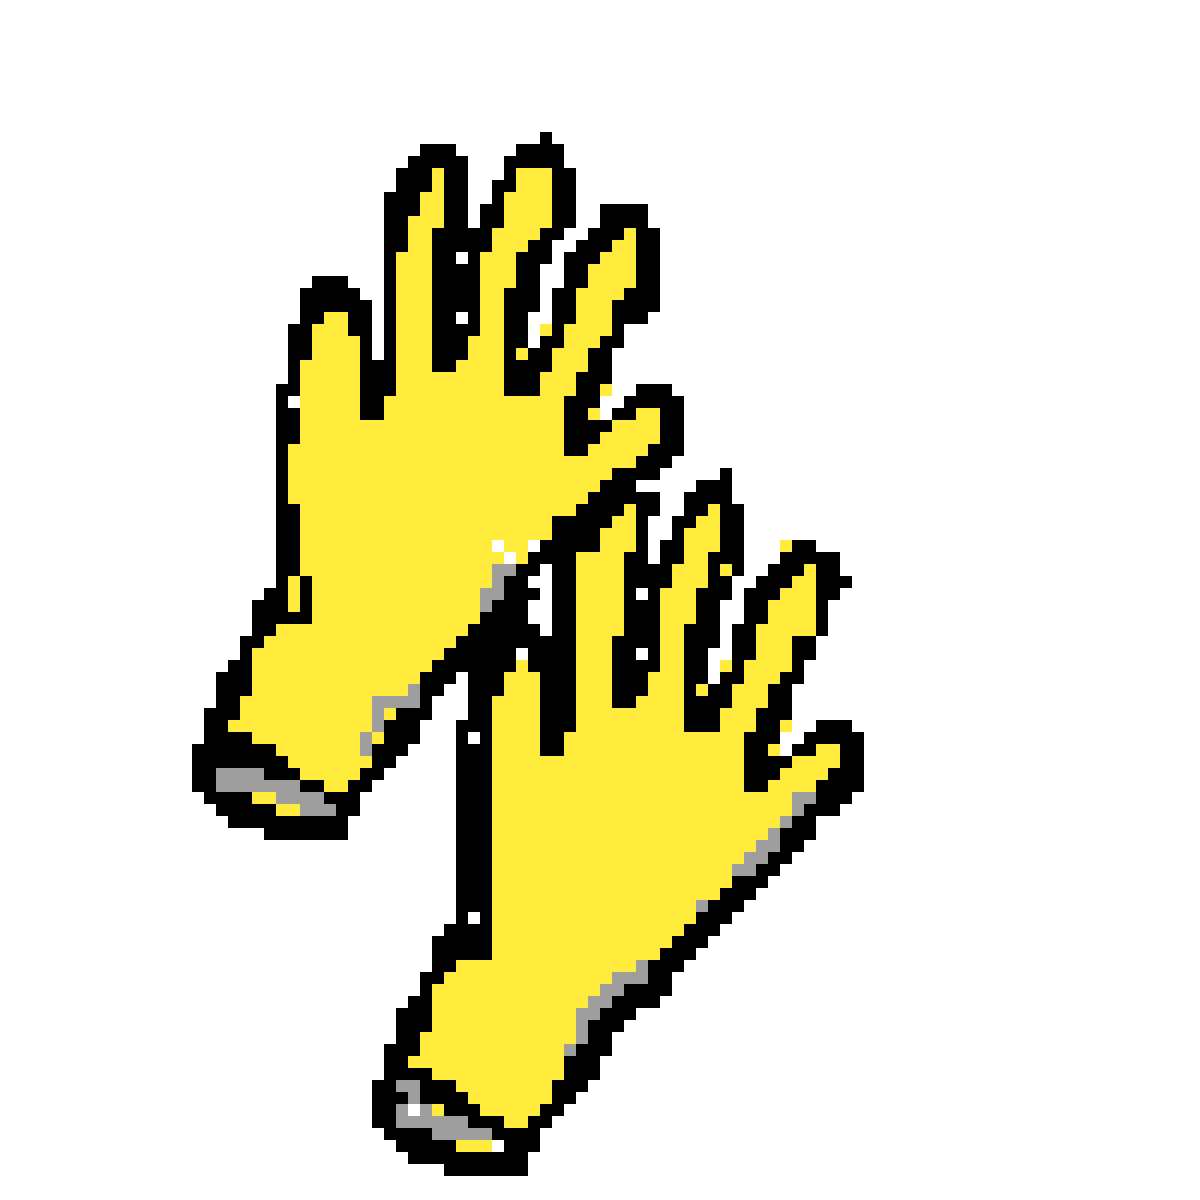 Glove clipart yellow glove. Pixilart gloves by anonymous